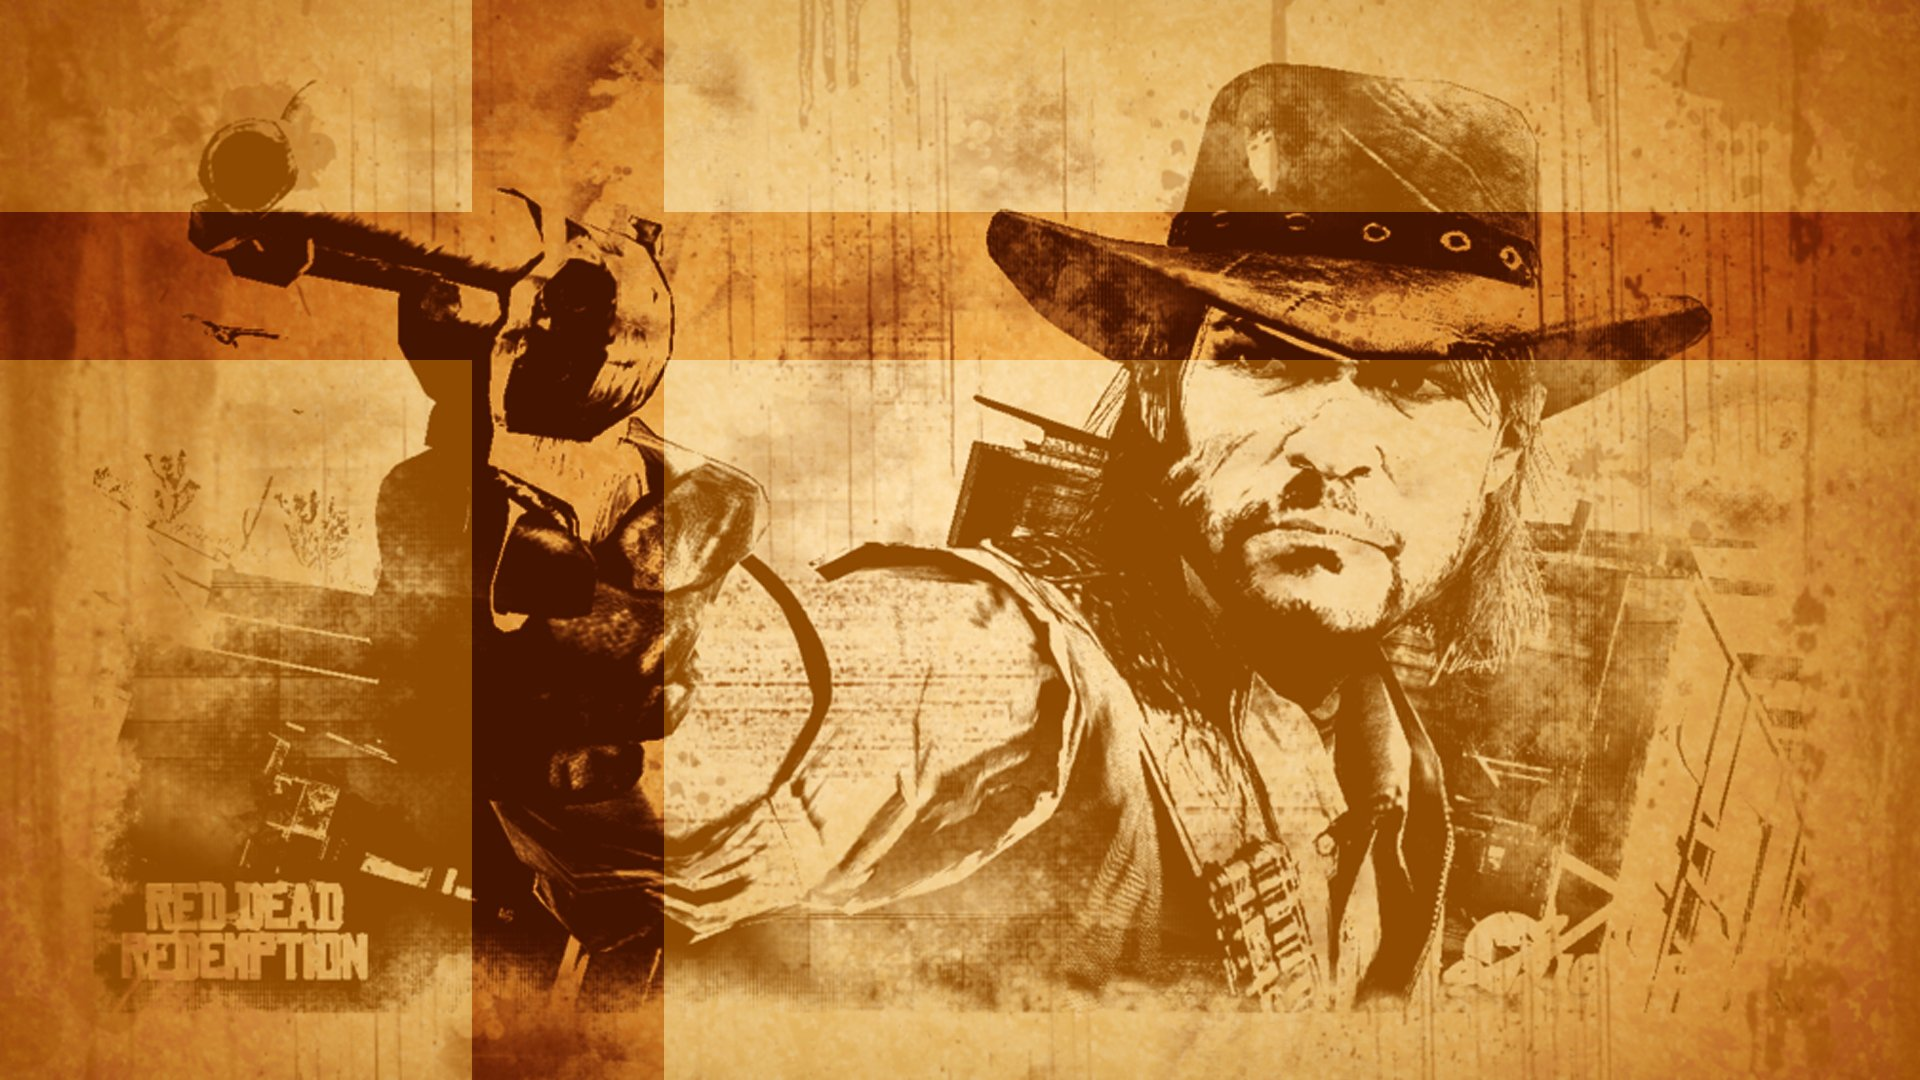 Western Wallpapers Download 1920x1080